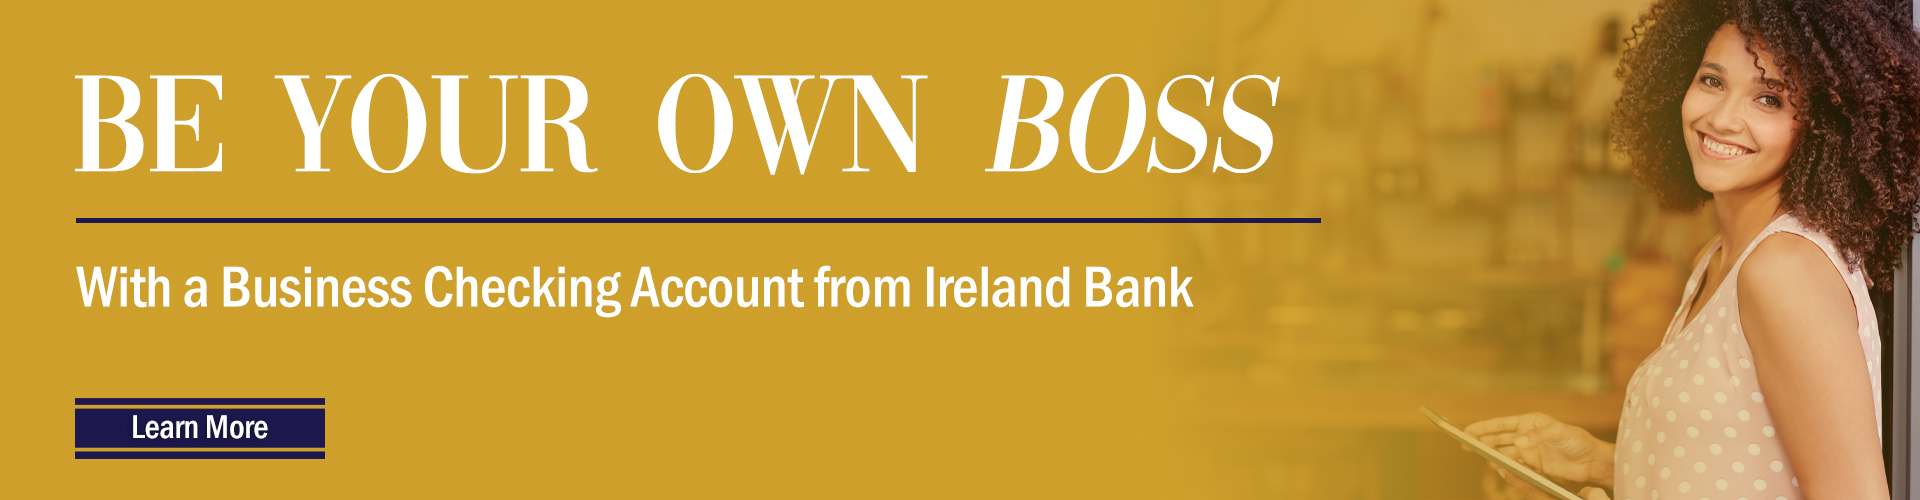 Be your own boss with Business Checking from Ireland Bank